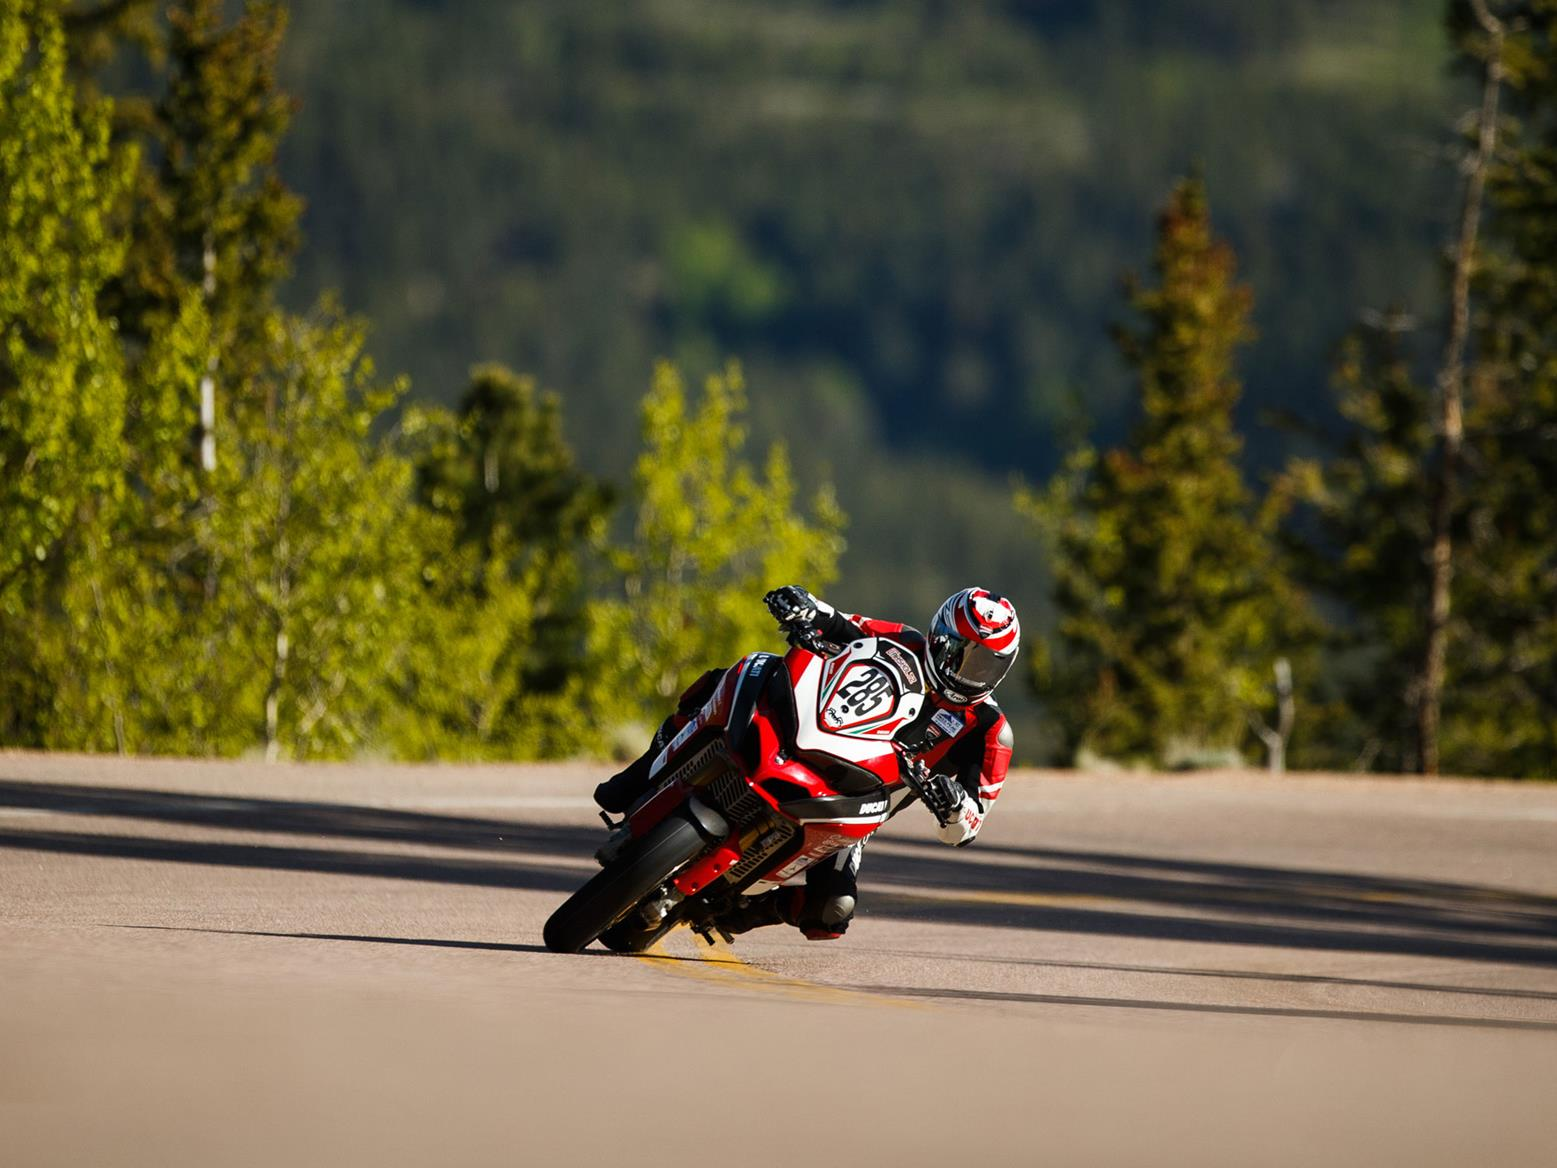 Codie Vahsholtz on the Ducati Multistrada 1260 Pikes Peak